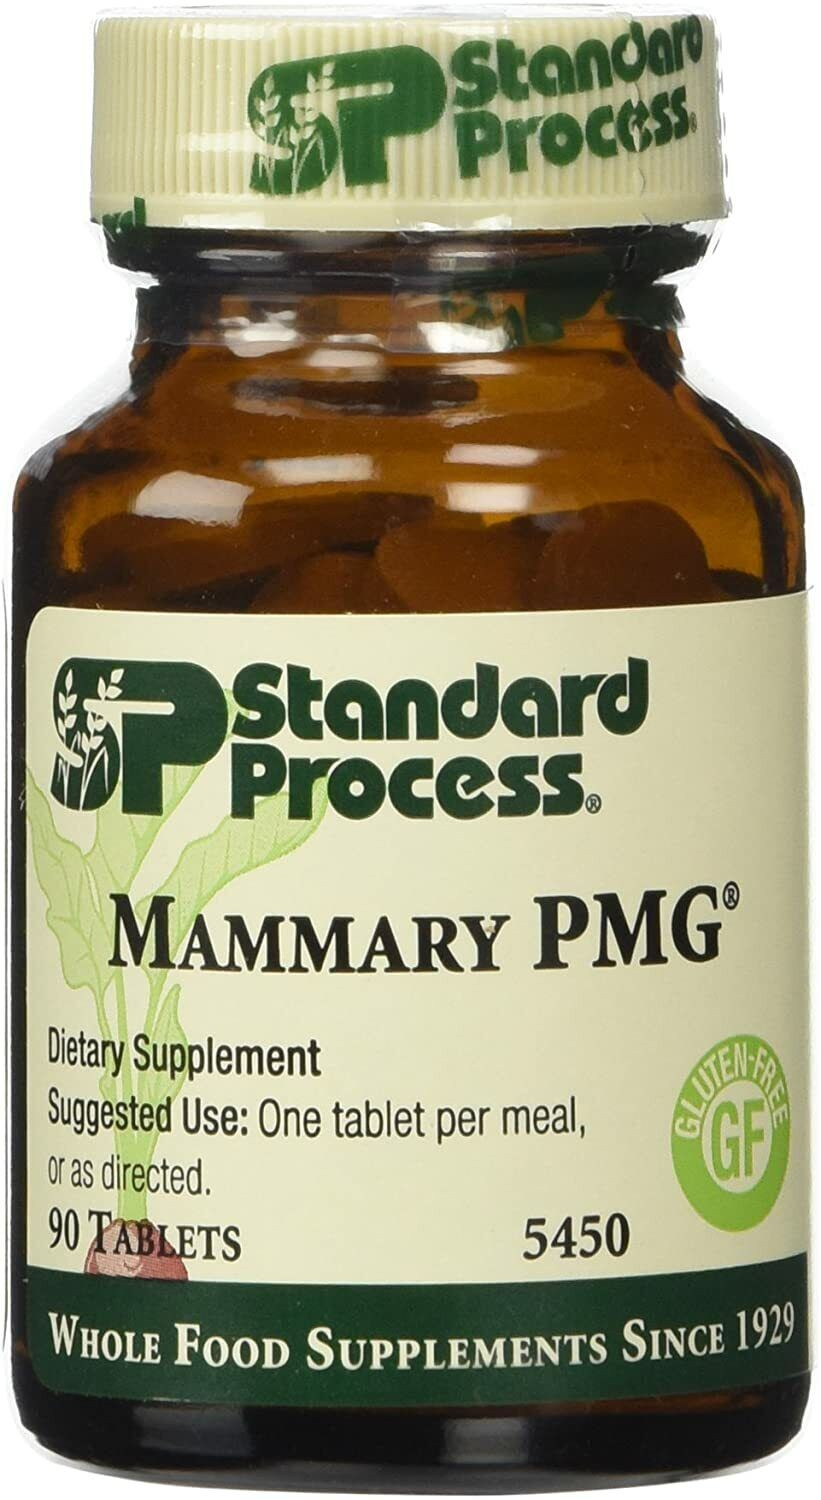 Standard Process MAMMARY PMG 90T  * Exp 09/21  * SHIPS OUT WITHIN 24 HOURS FREE!